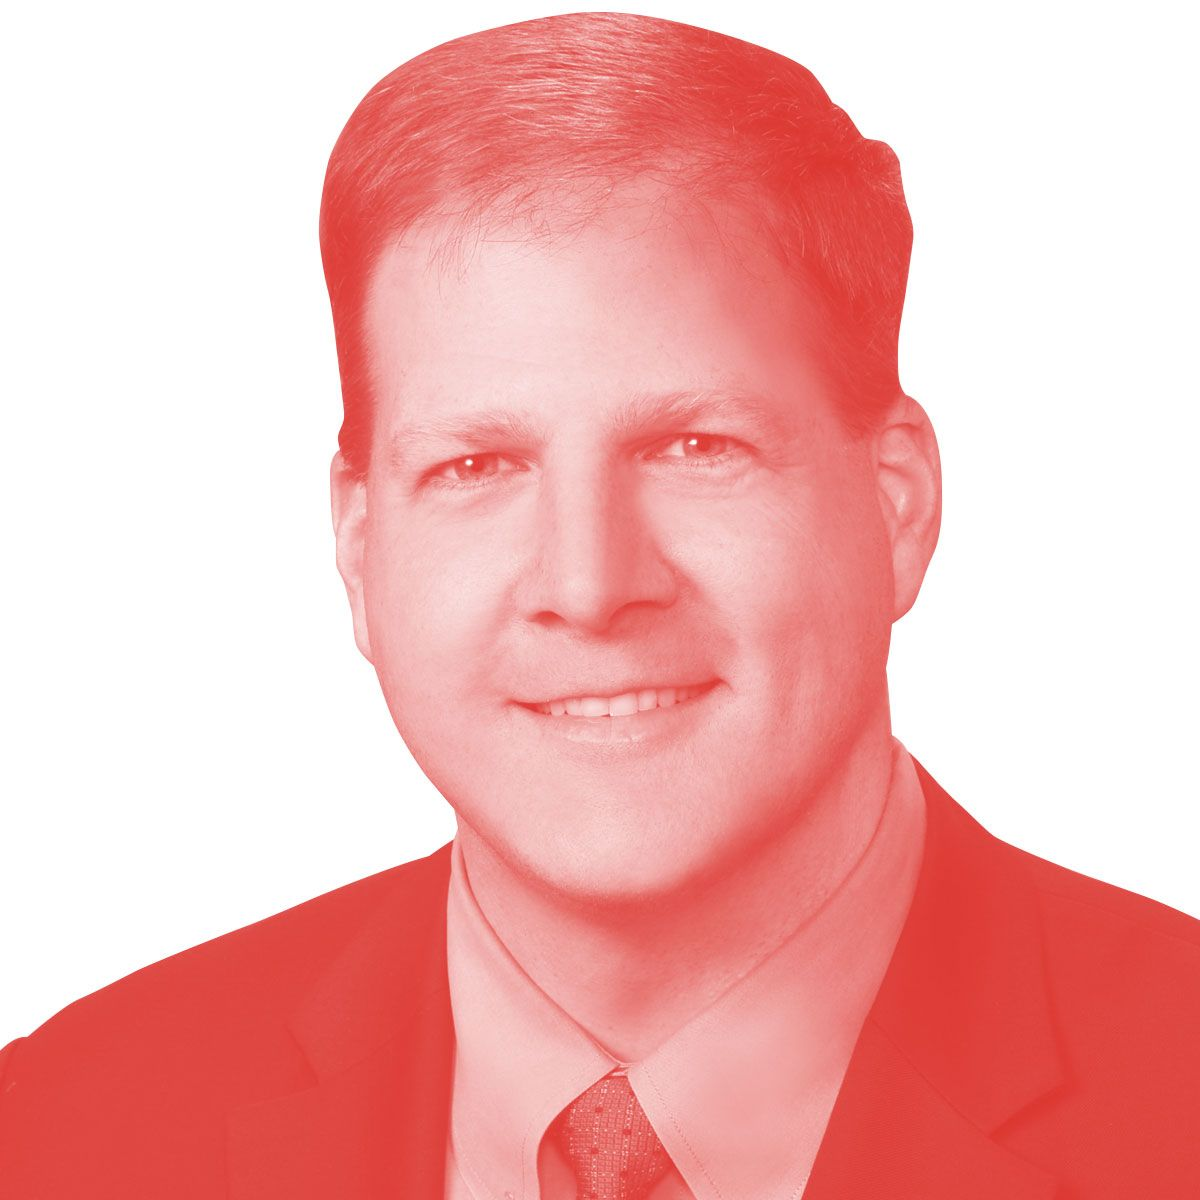 Chris Sununu (republican, New Hampshire)